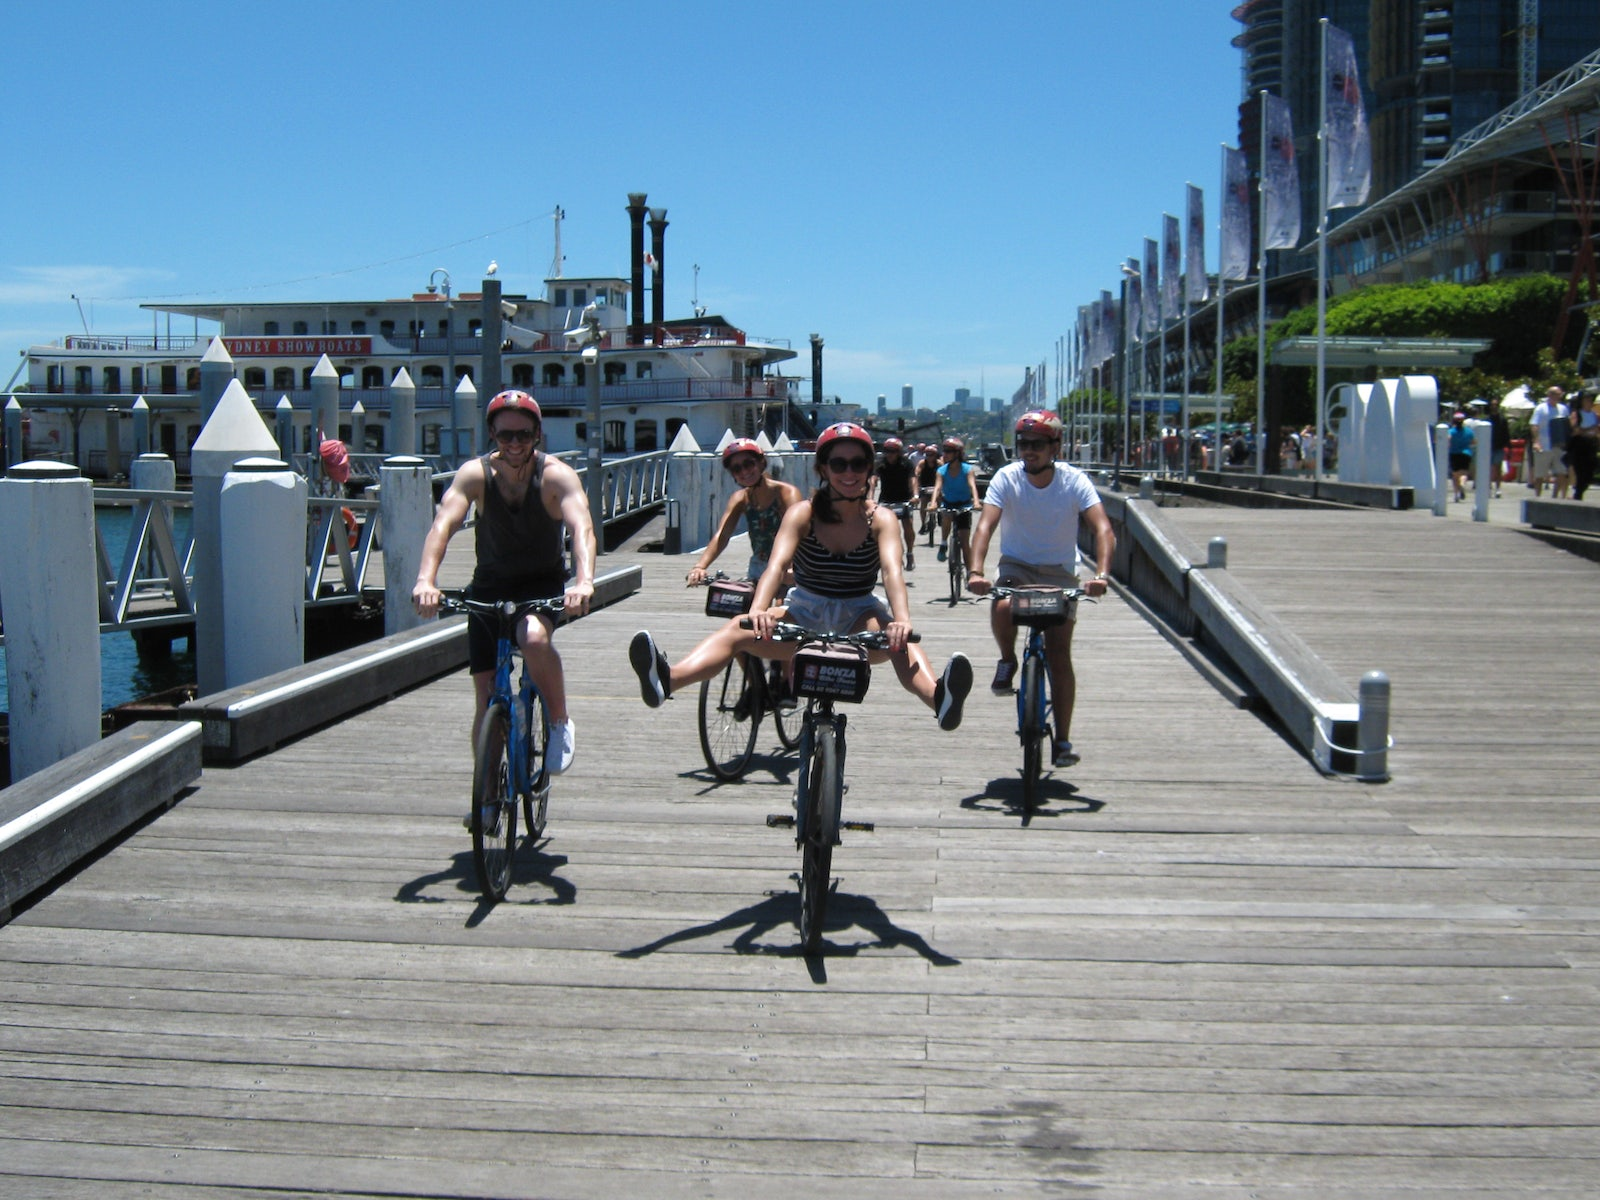 picture of A Bonza Bike Tour which looks at Sydney from a historical perspective